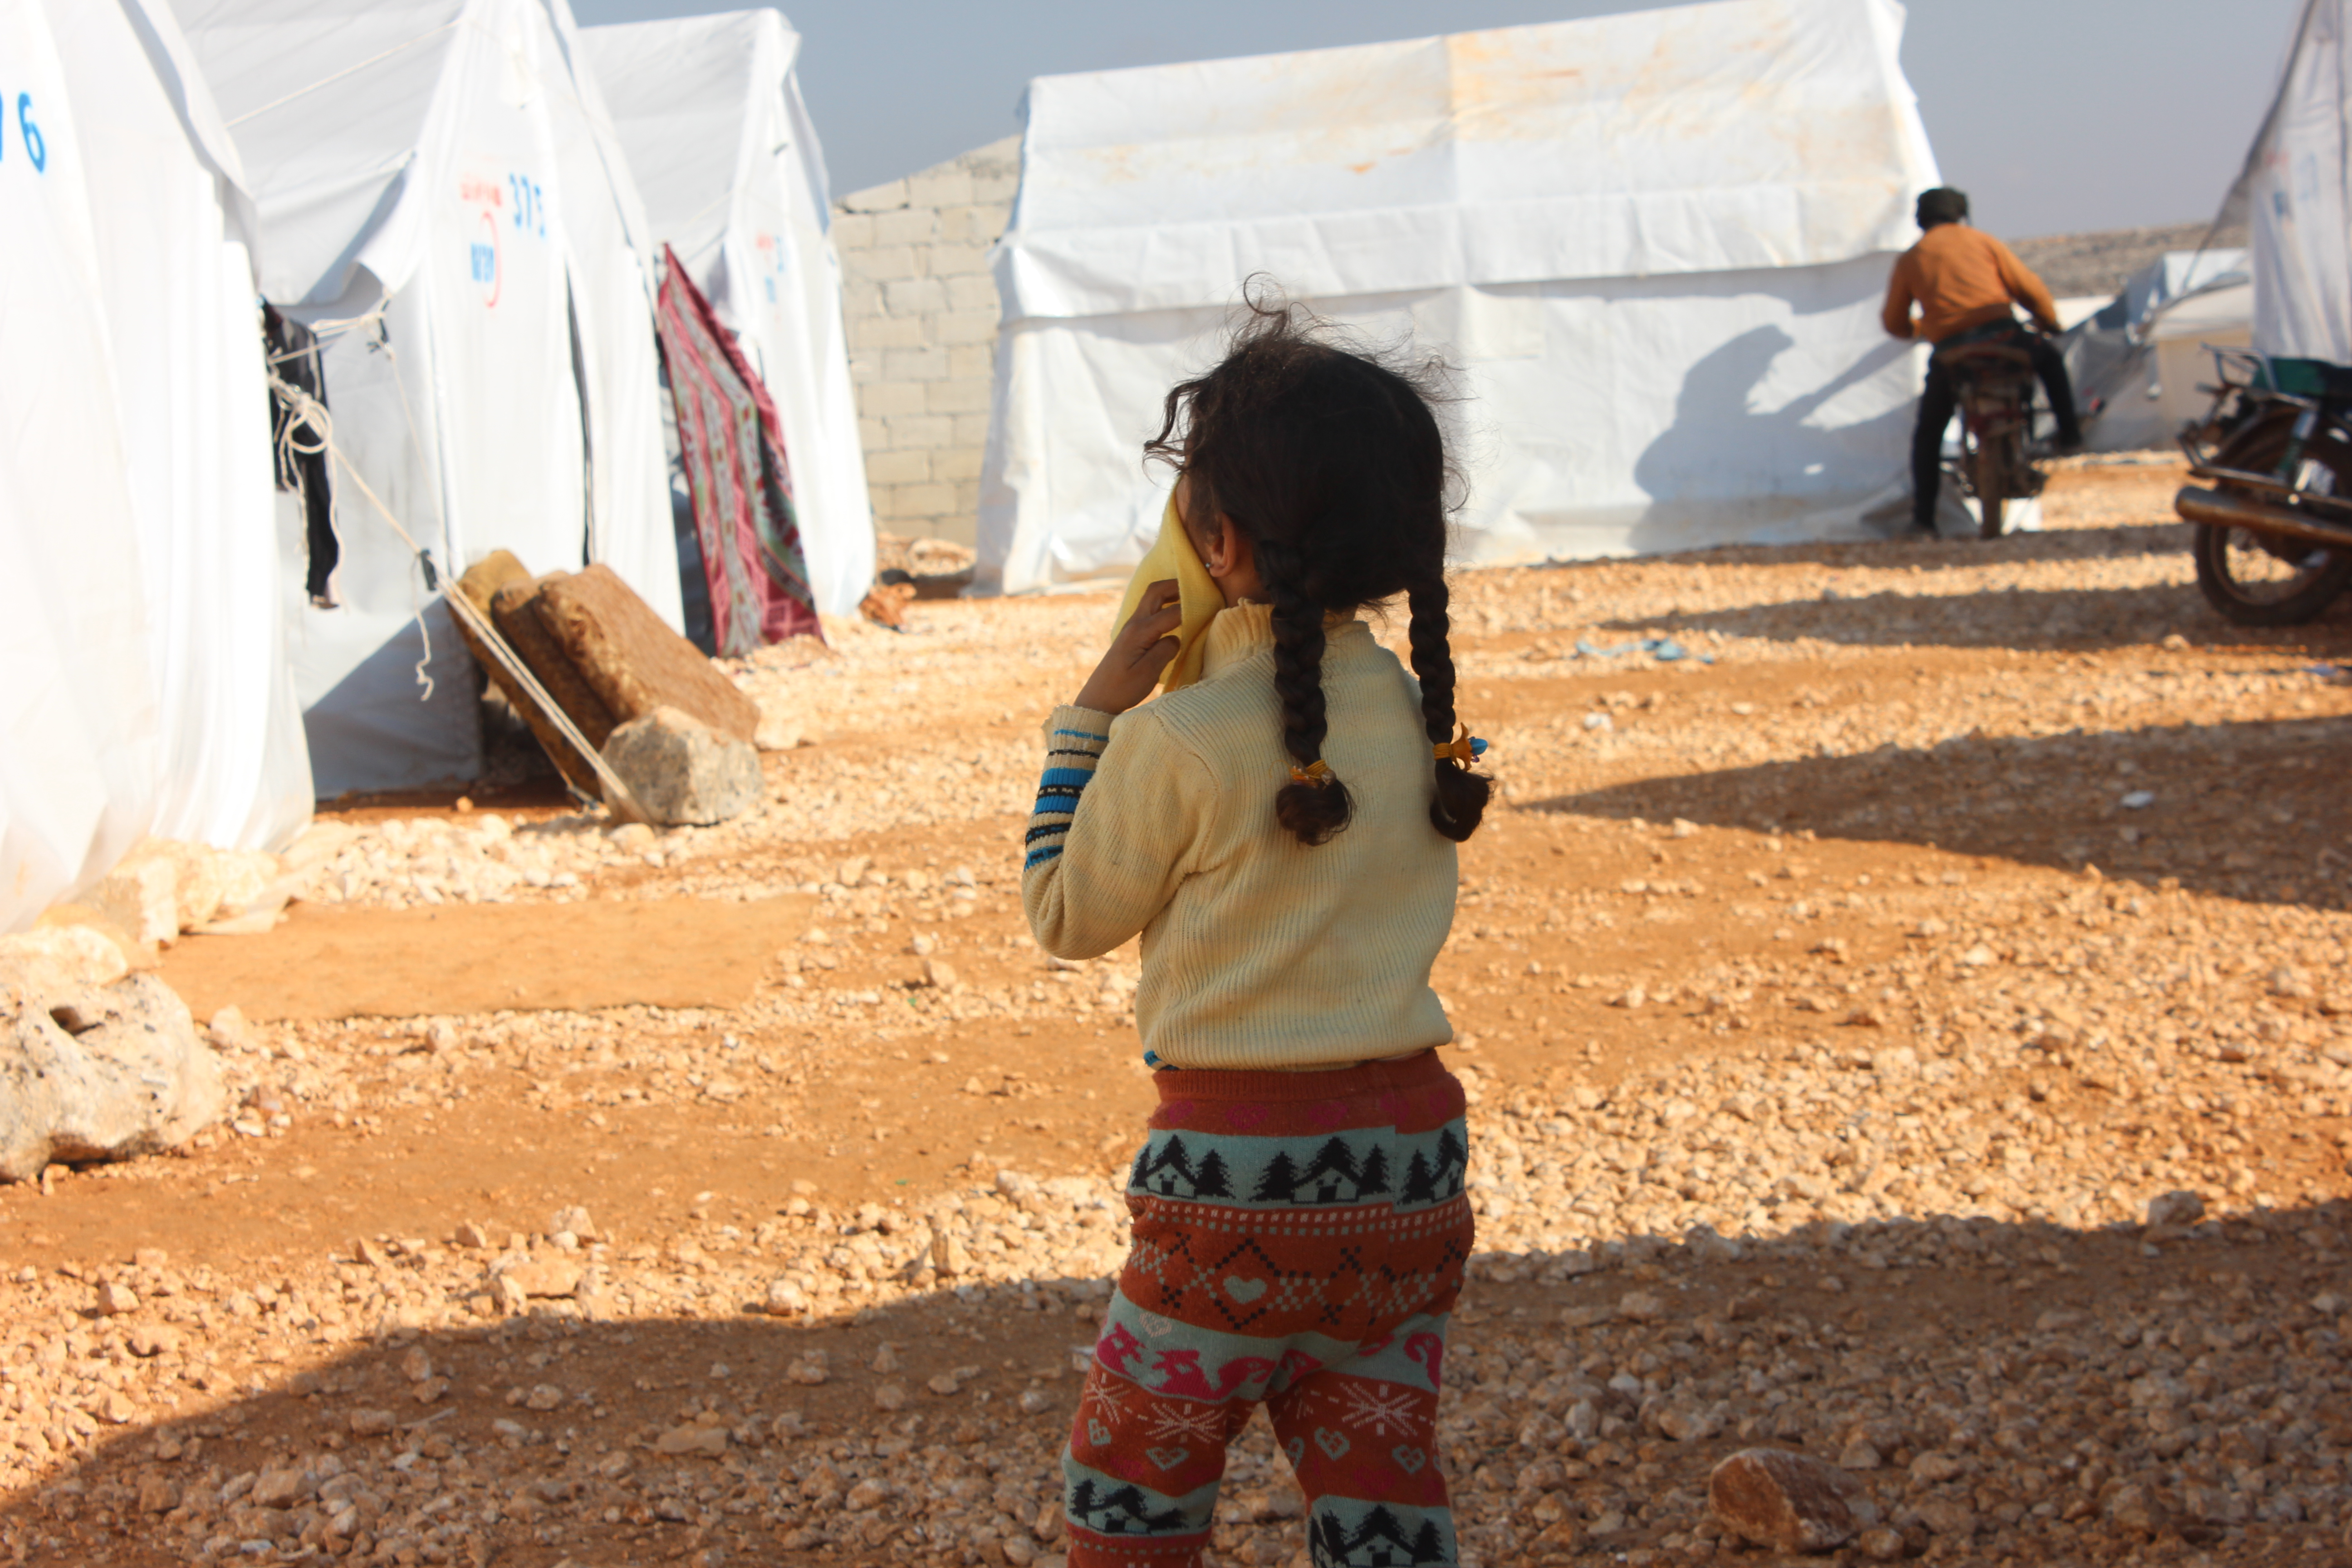 Meeting the Real Needs of Syrian Civilians: A Message to the Humanitarian Task Force